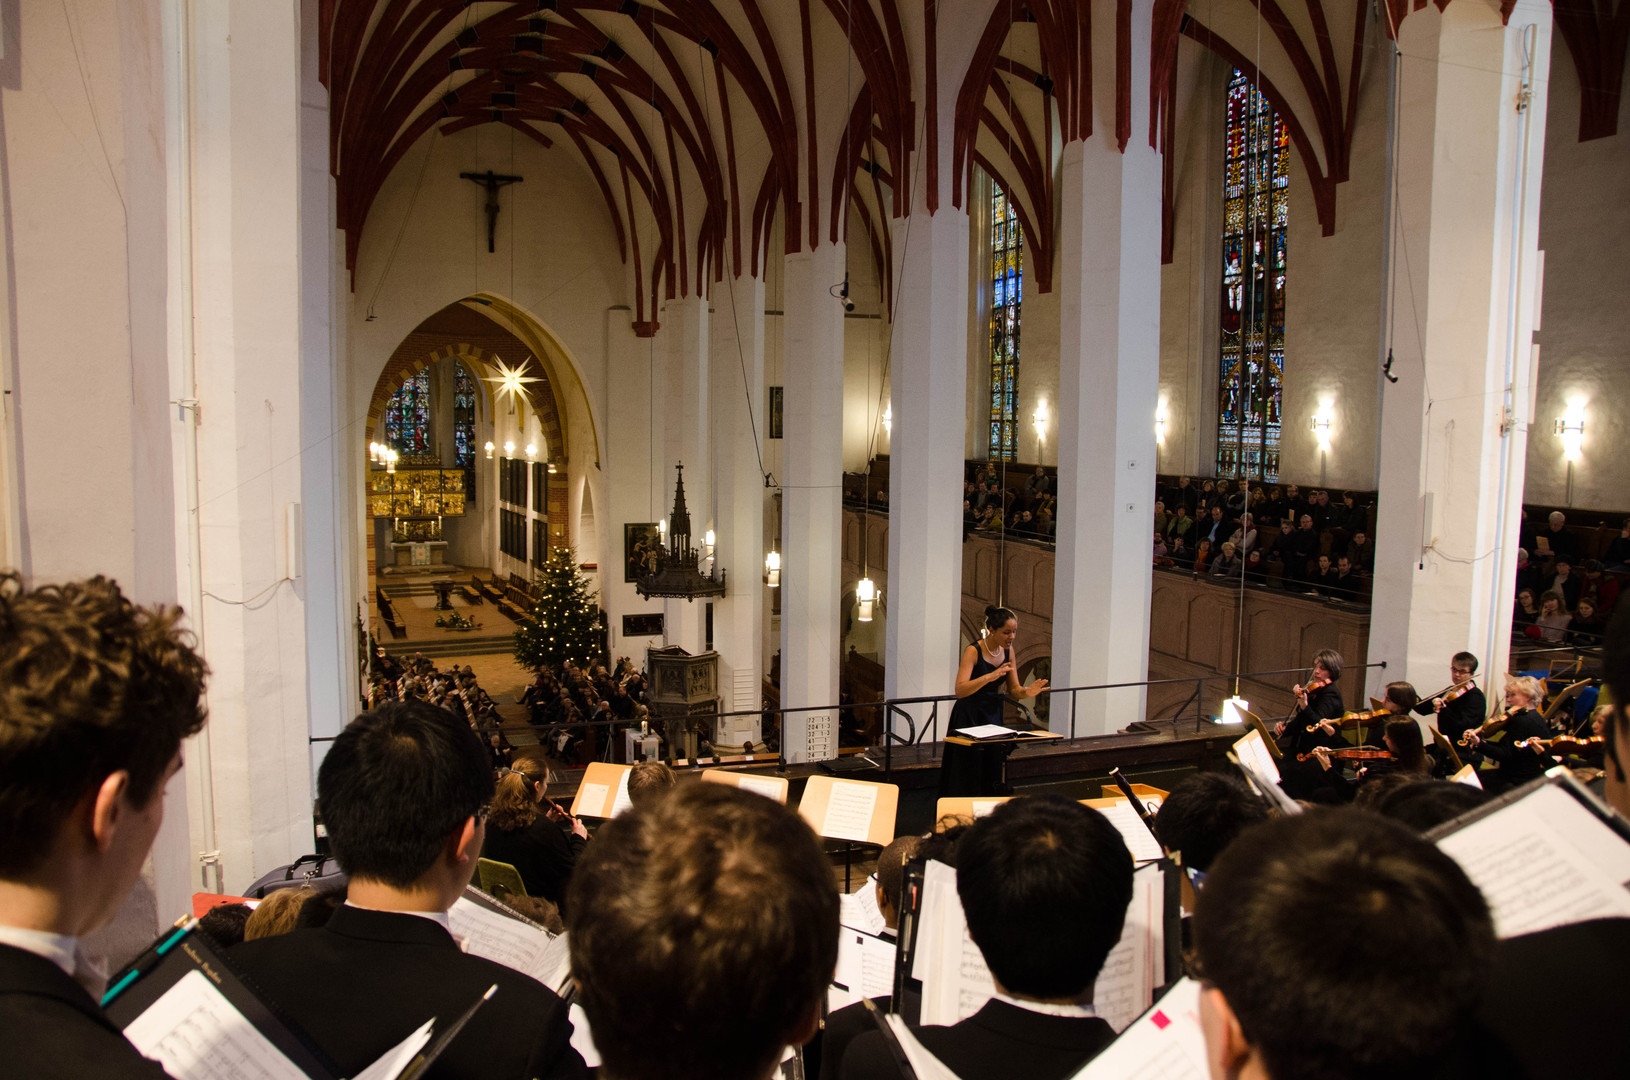 Bach BVW 118 / Leipziger Barockorchester and the Princeton University Glee Club / January 2014 / Kevin Lee